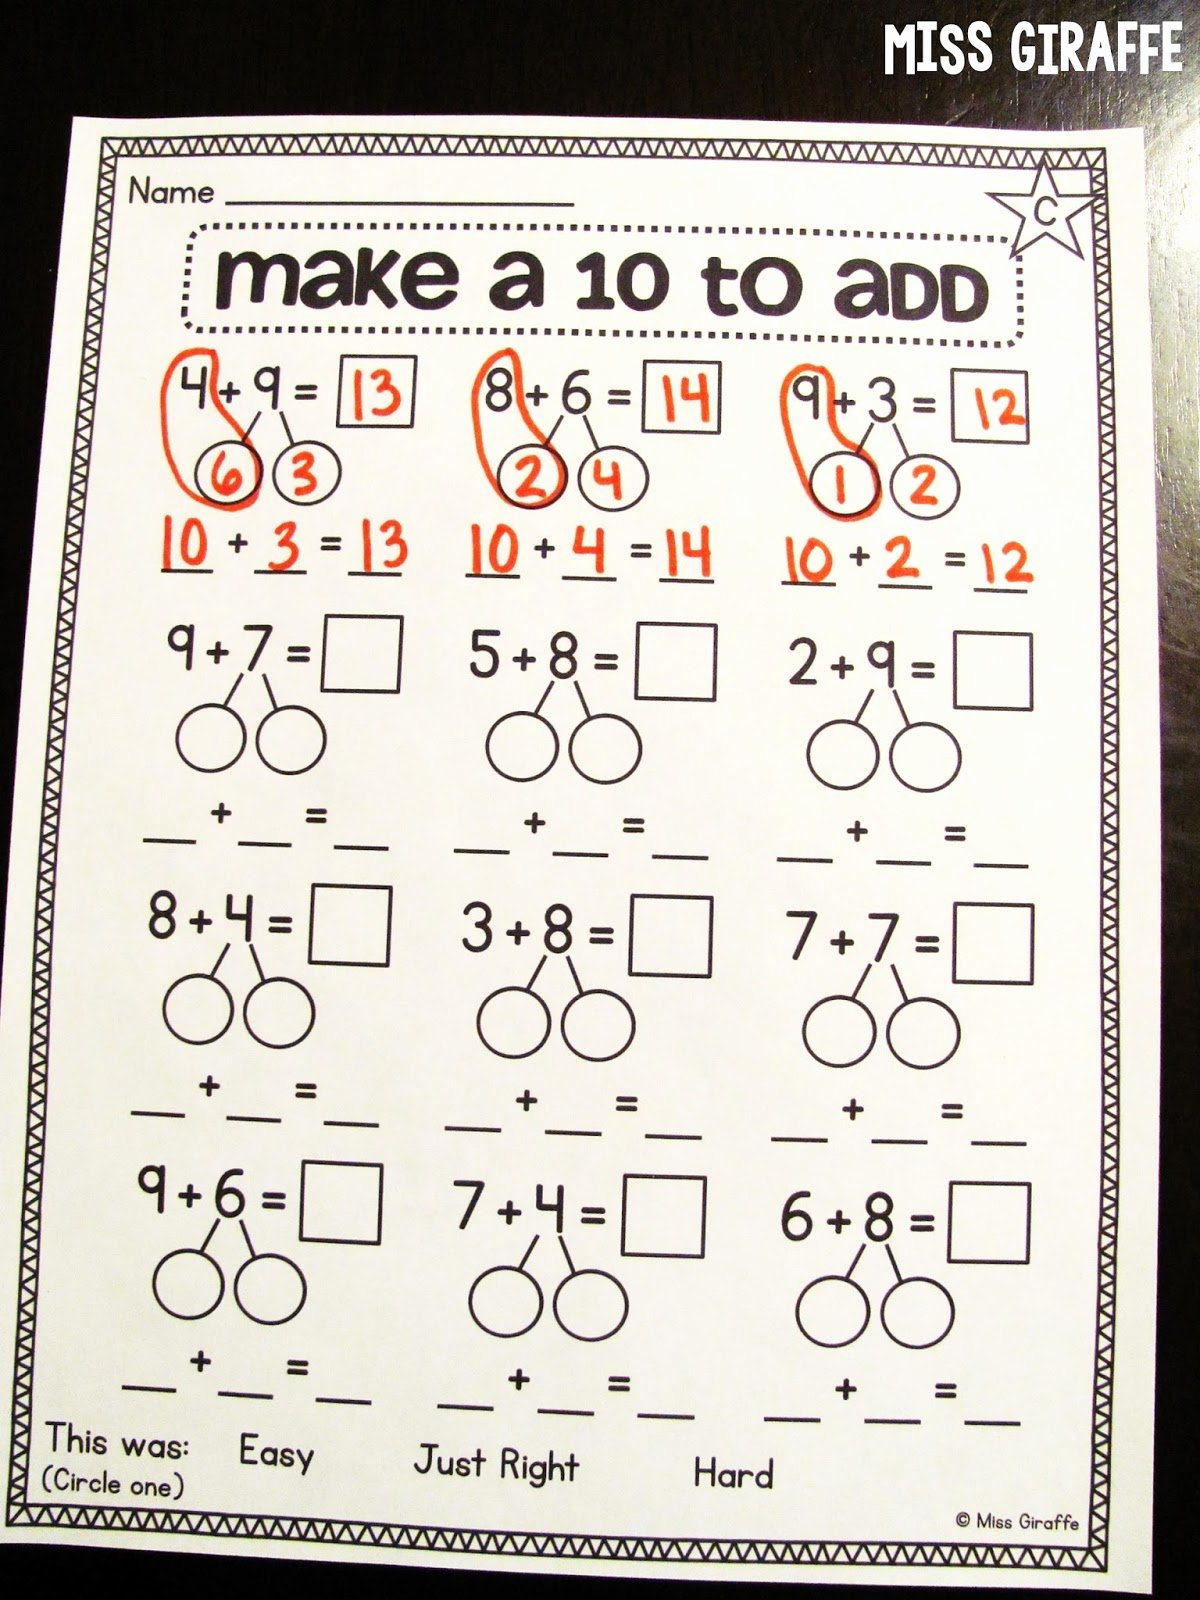 Composing and Decomposing Numbers Worksheet Awesome Miss Giraffe S Class Making A 10 to Add